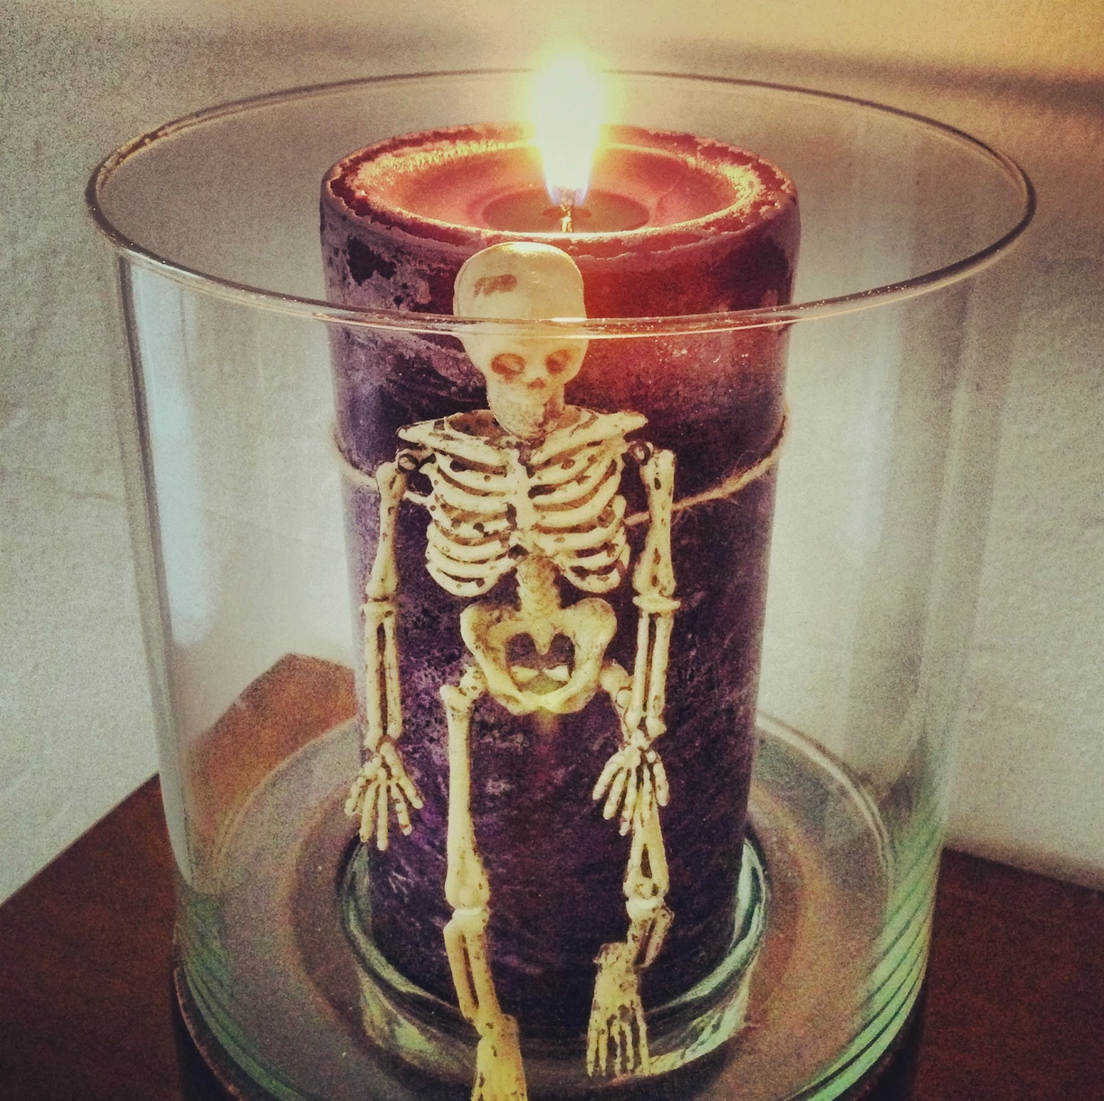 Do It Yourself Collections Diy Home Decor Ideas On A: 16 Do It Yourself Halloween Home Decorating Ideas